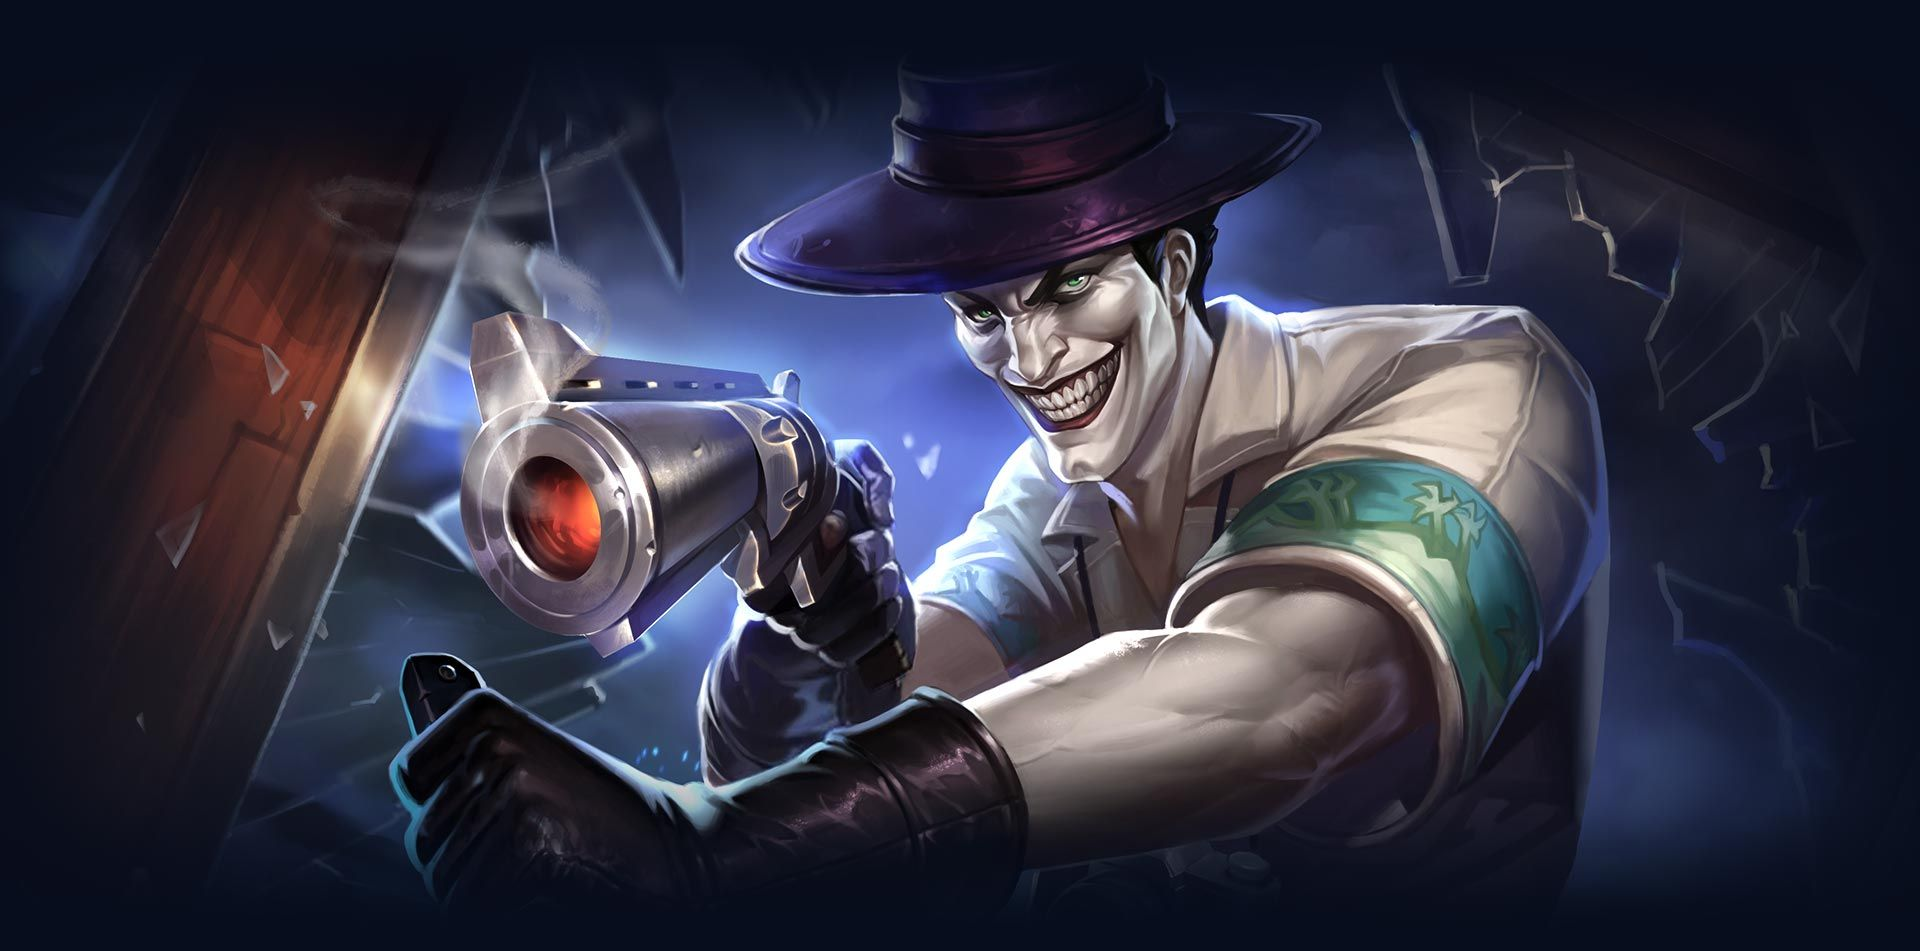 Wallpaper Aov Arena Of Valor The Joker